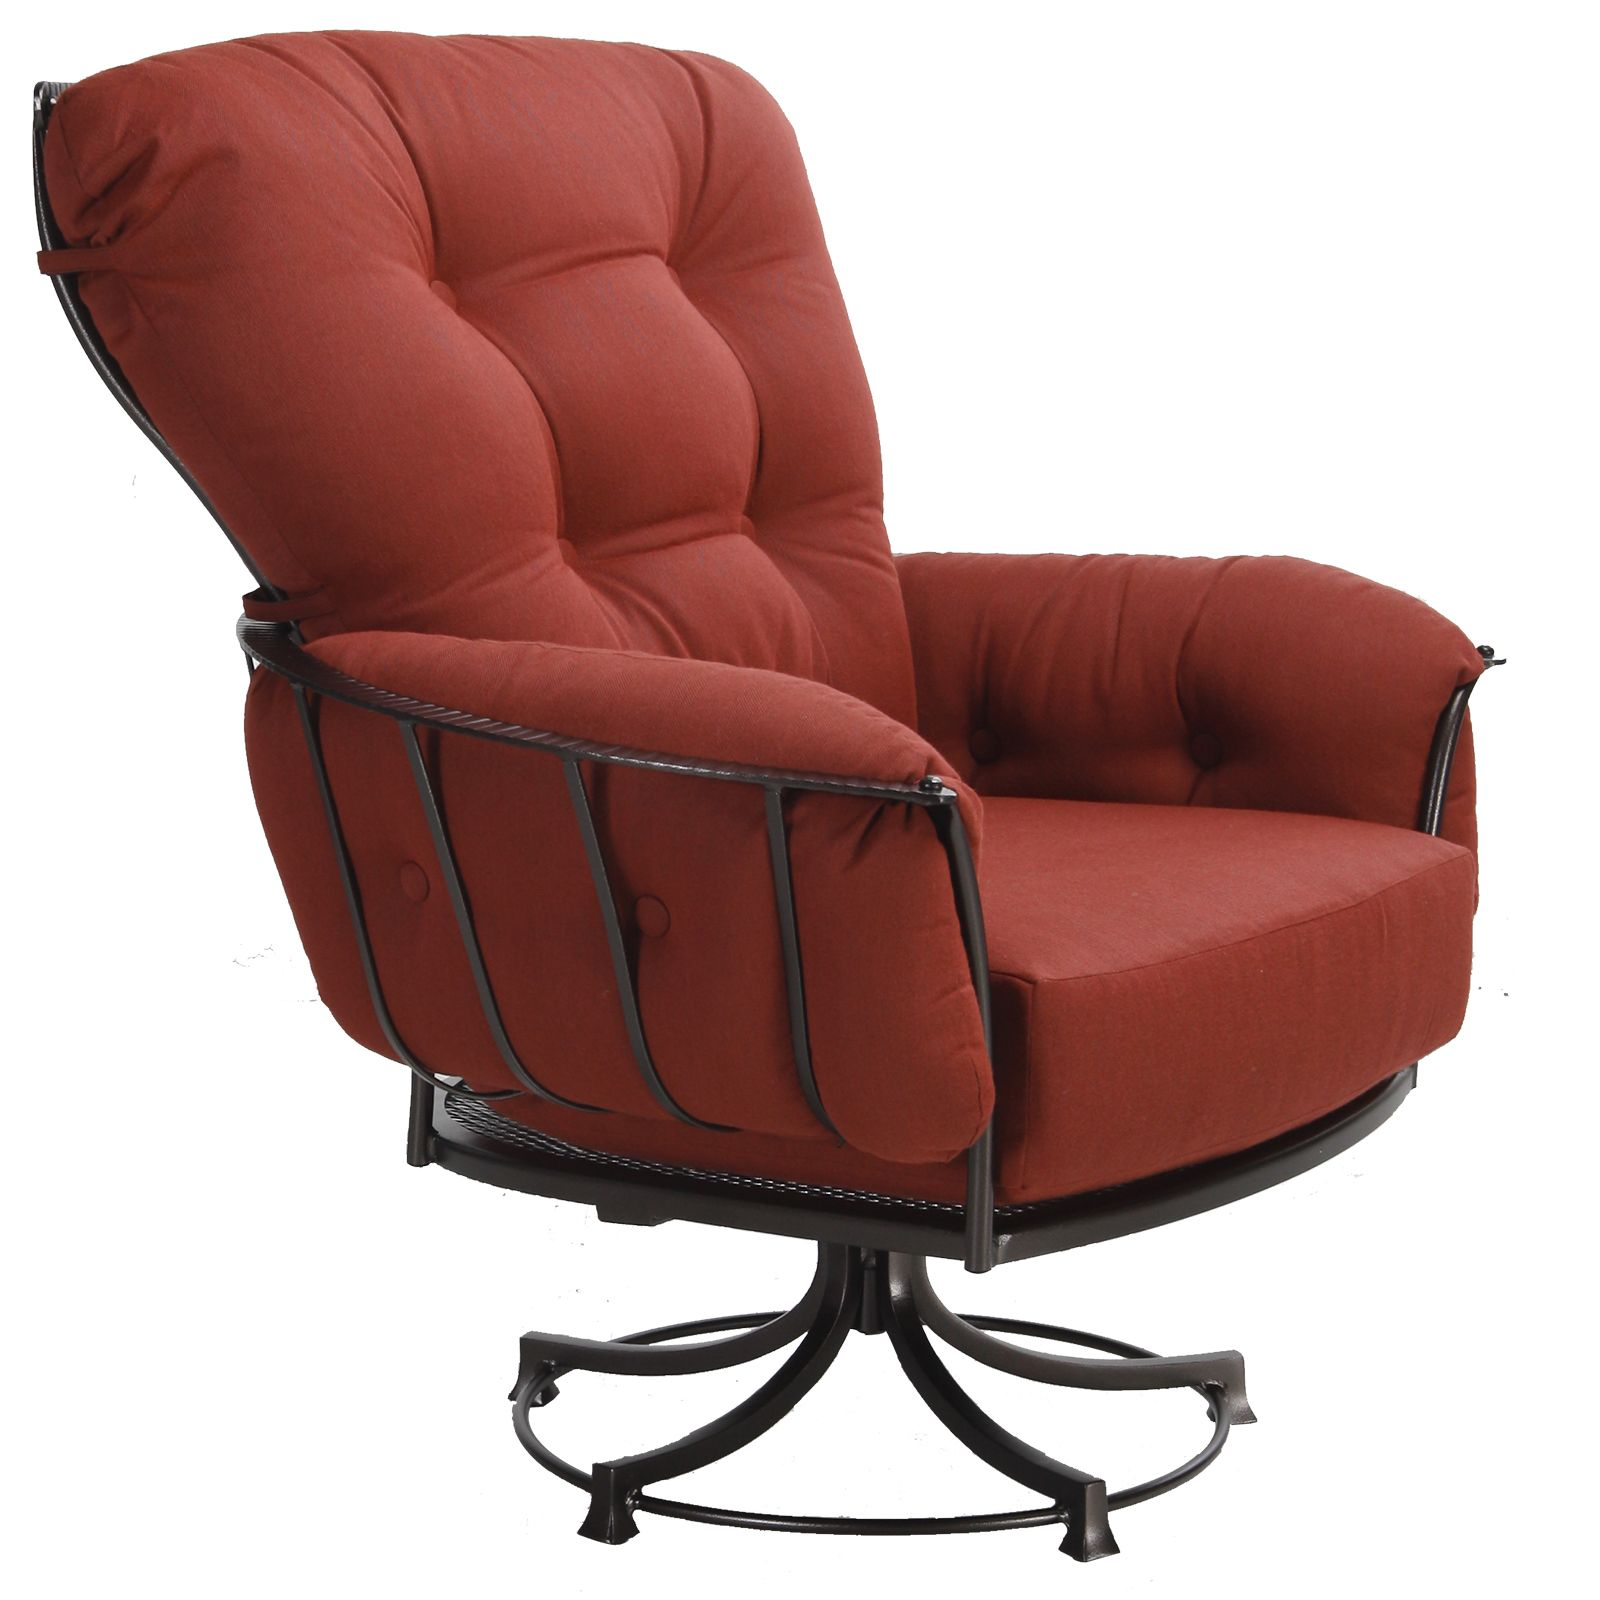 Swivel Rocker Club Chair look sooo comfortable and so many